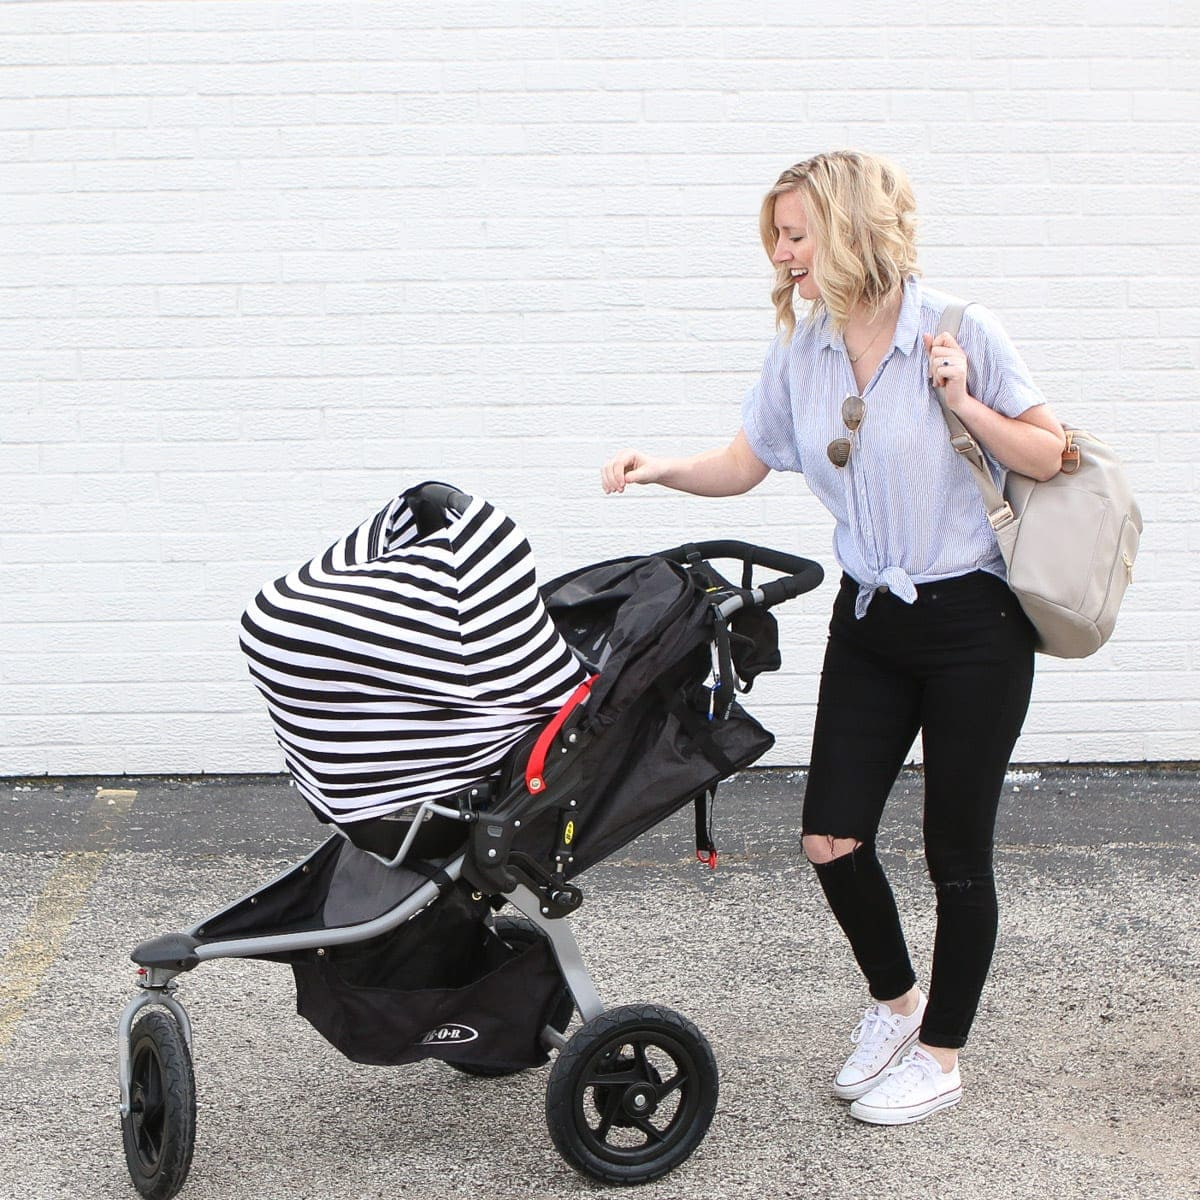 Reviewing the BOB newborn stroller